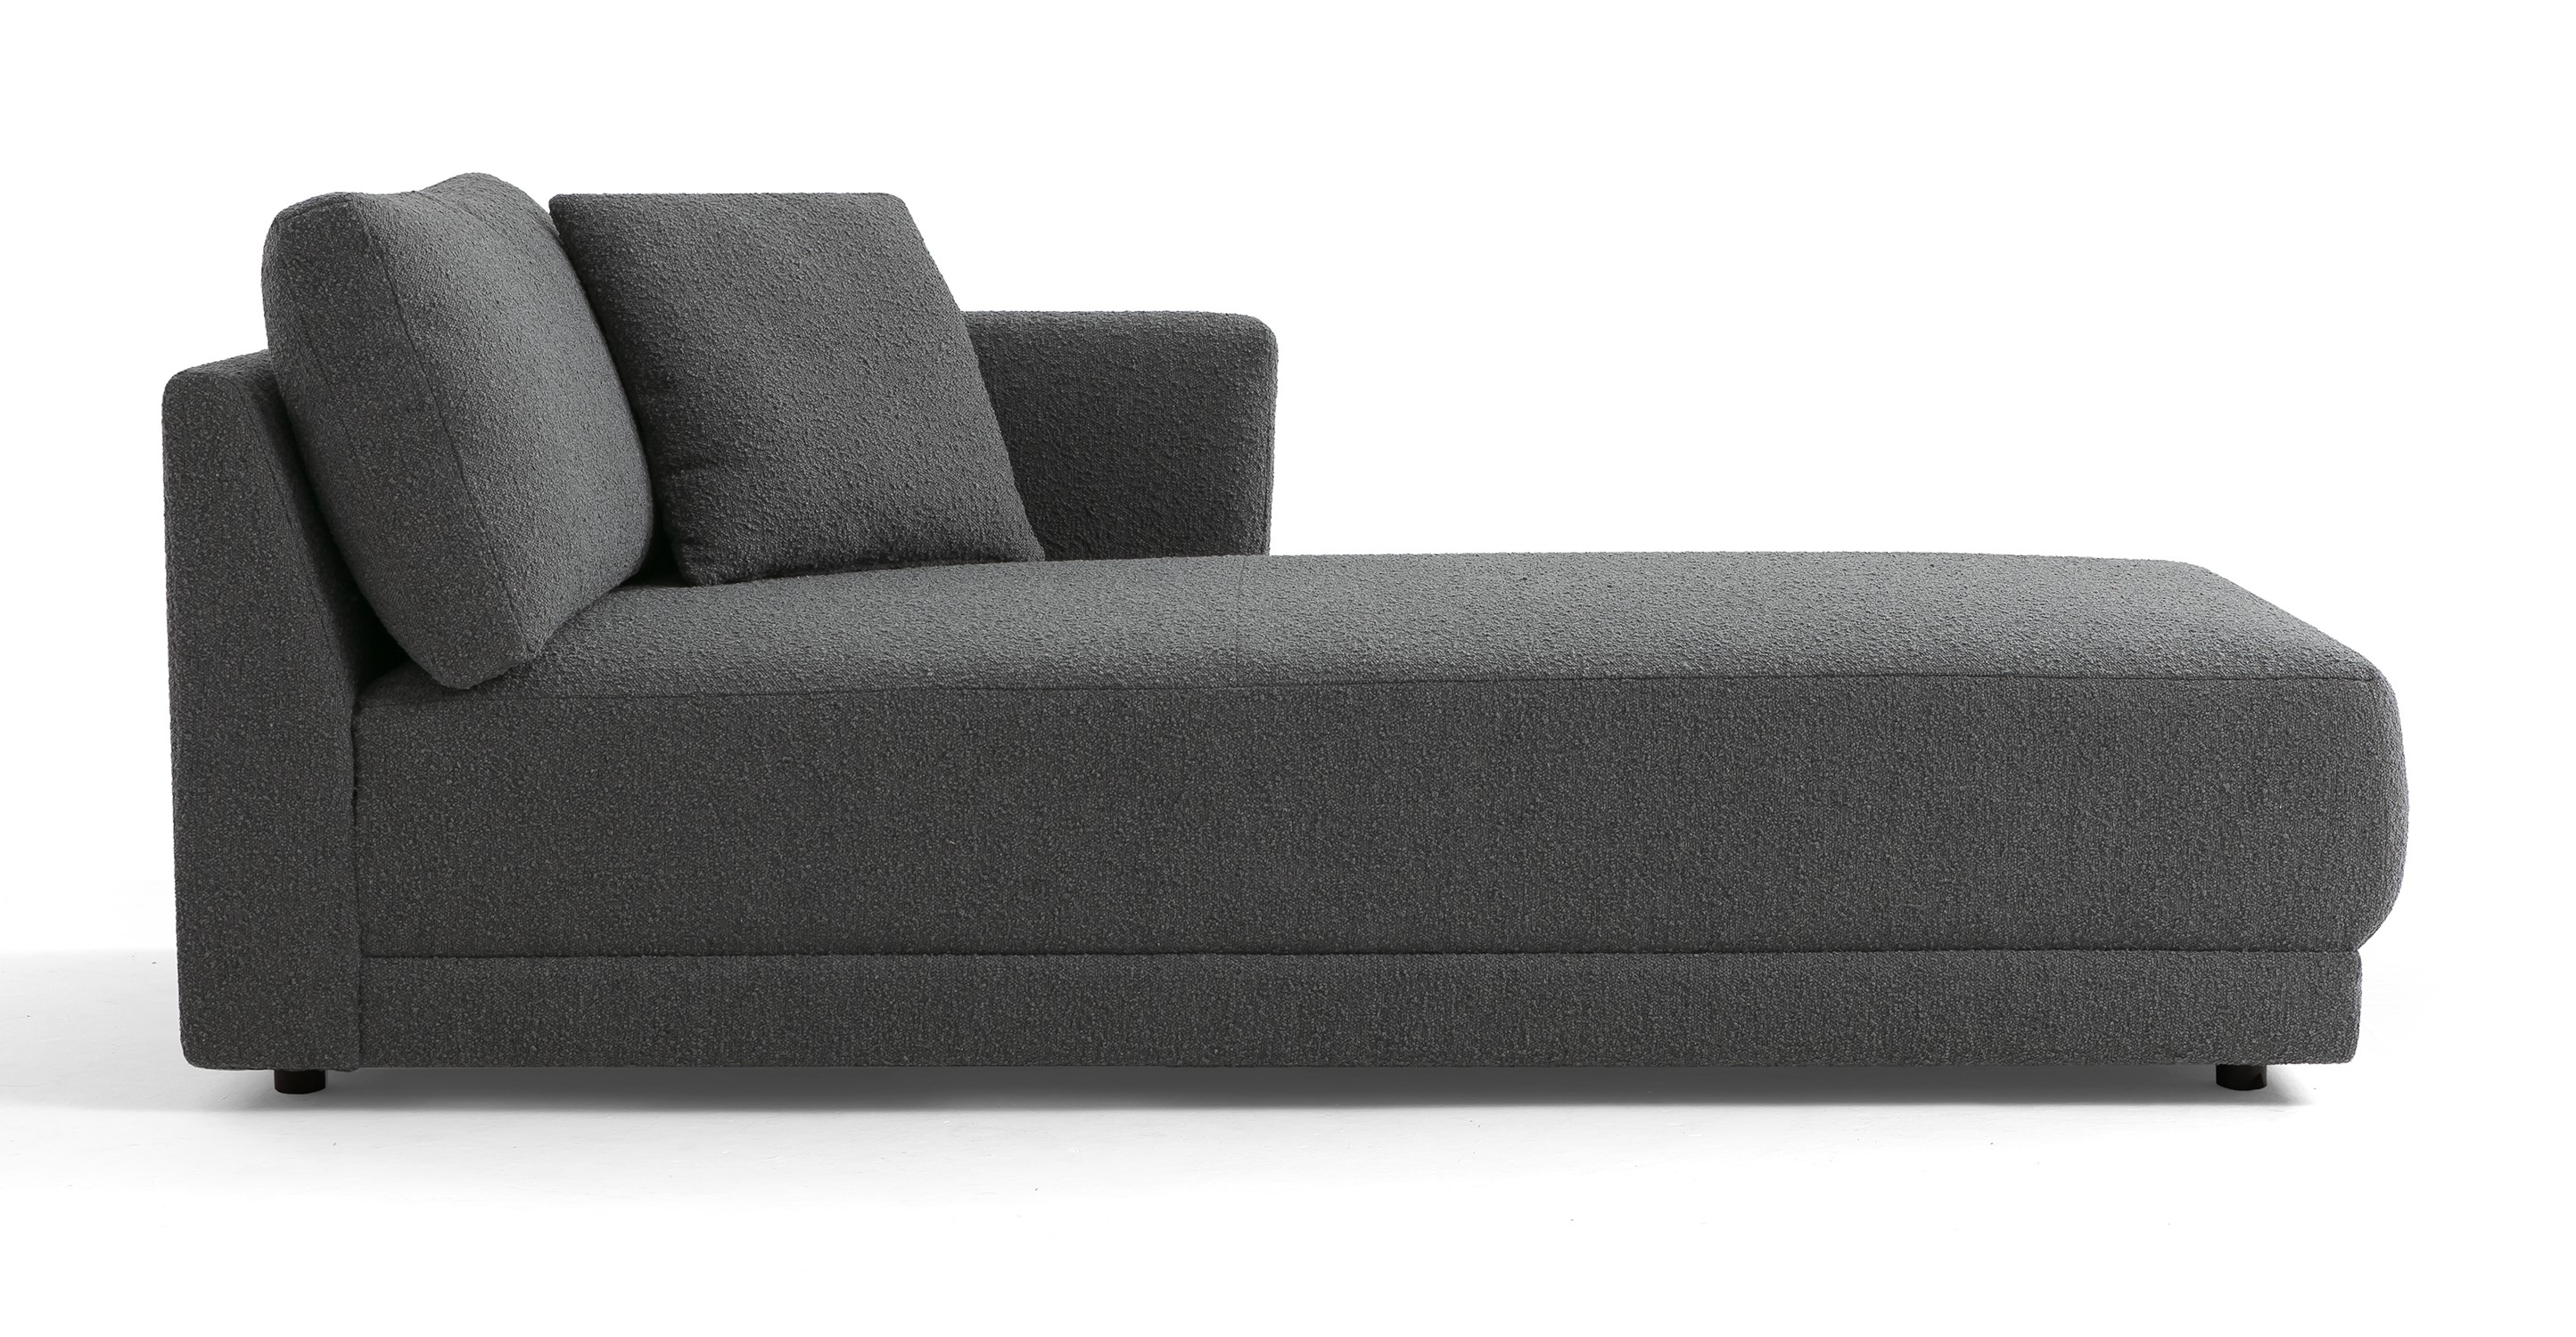 "Domus 39"" Right Chaise Fabric Sofa, Gris Boucle"